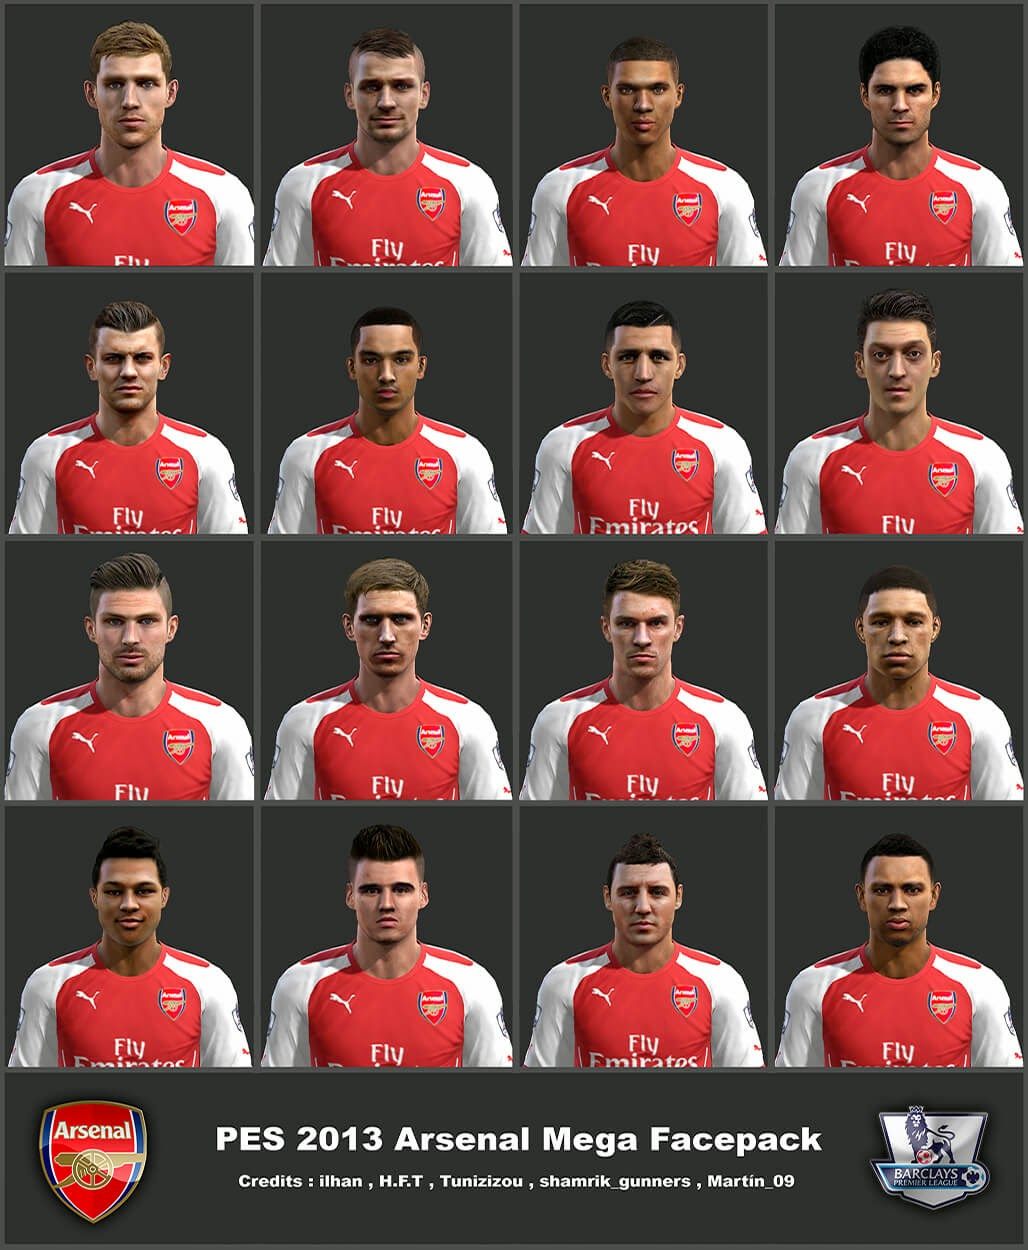 PES 2013 PC: Mega facepack (pacote de faces) do Arsenal